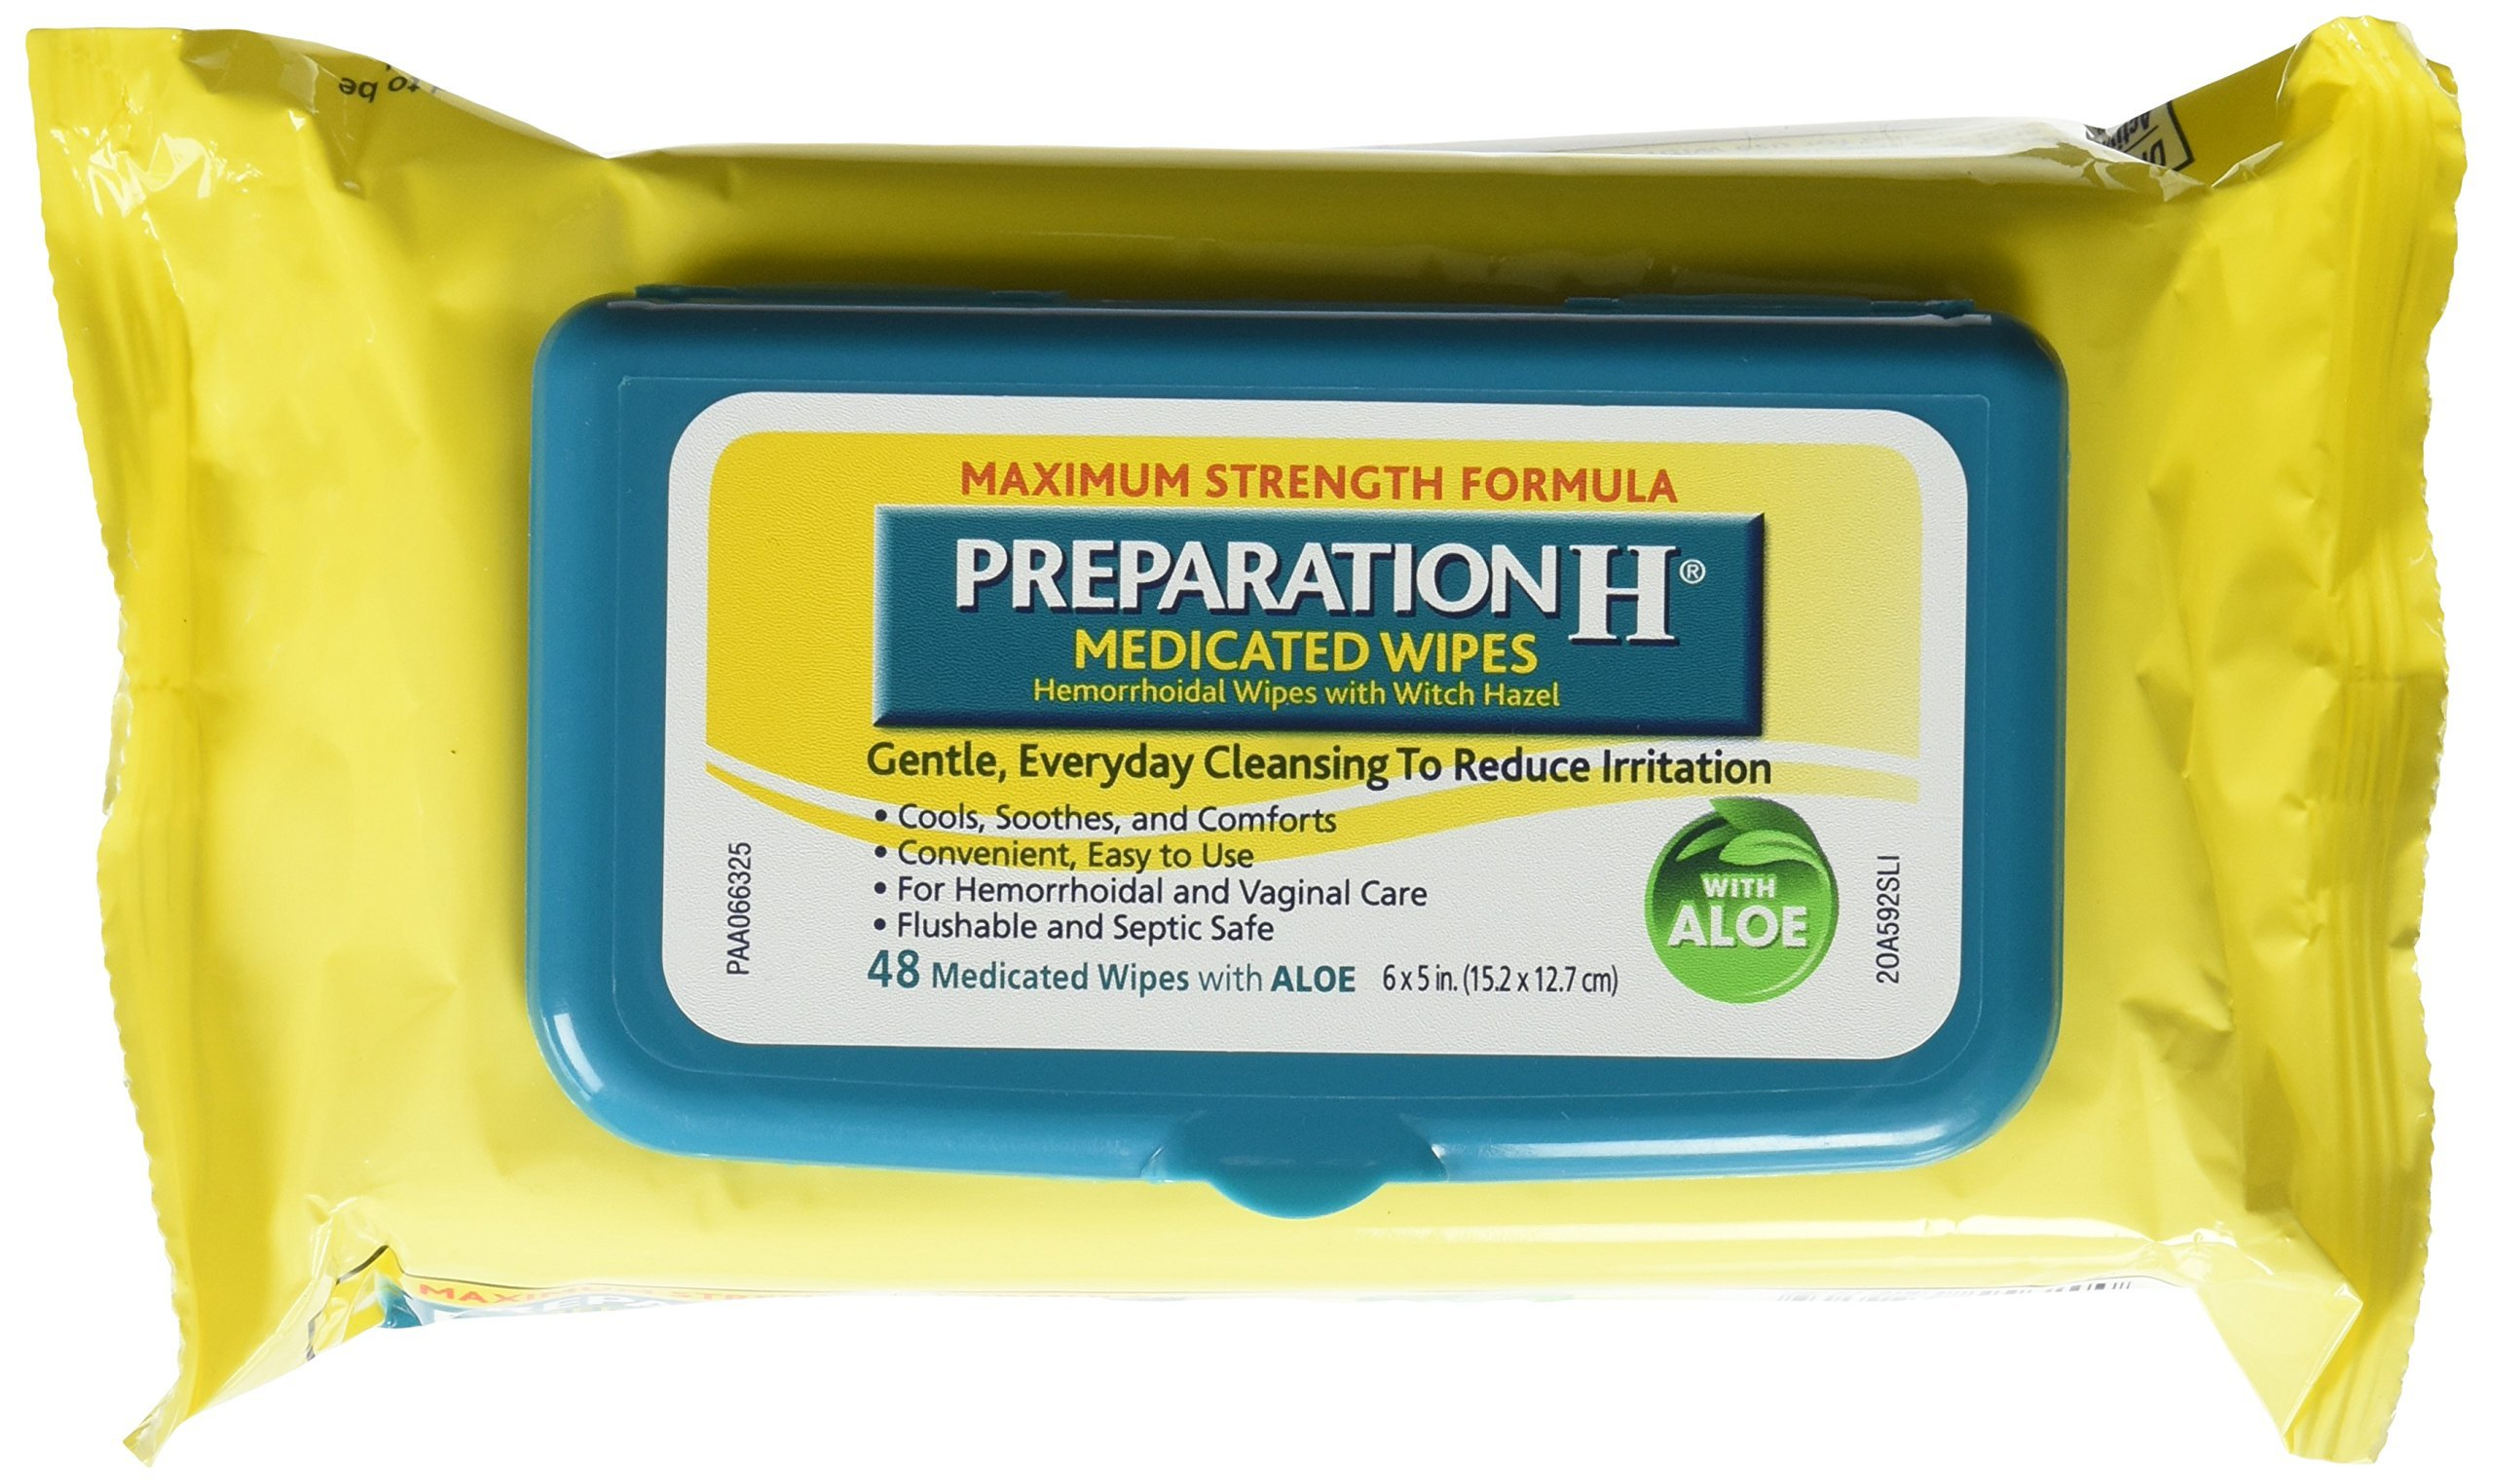 Preparation H Medicated Wipes 48 Ea (Pack Of 4) by Preparation H